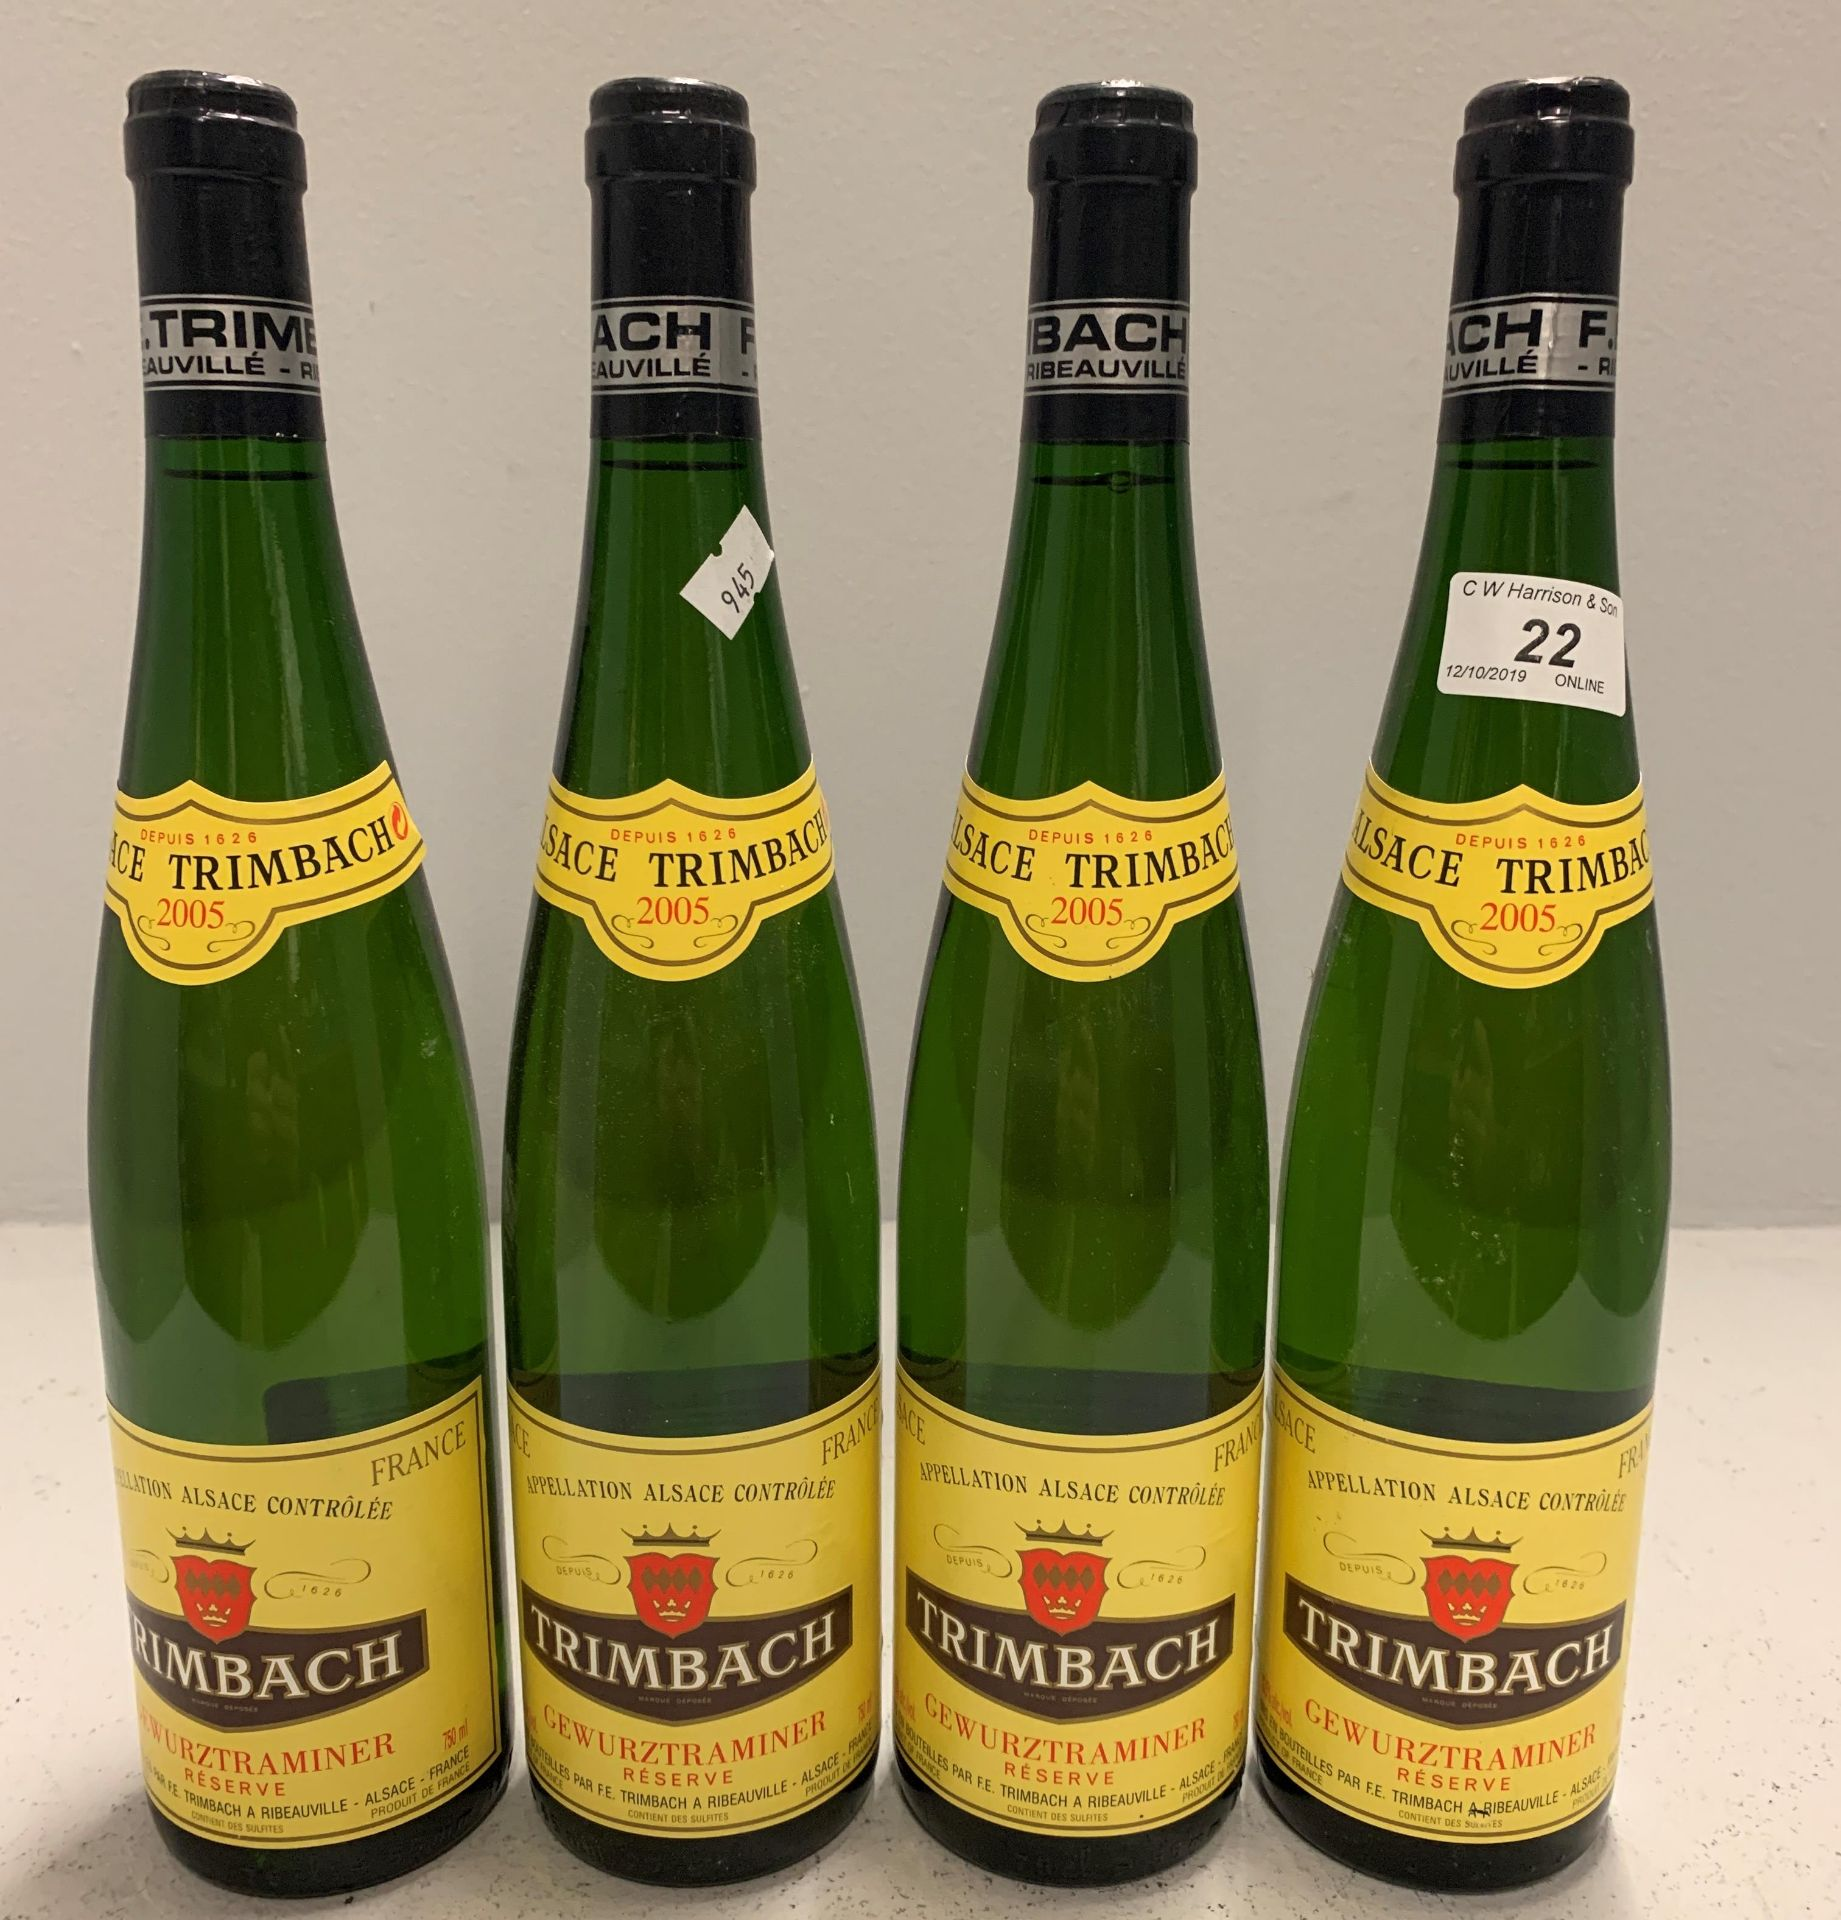 Lot 22 - 4 x 750ml bottles Trimbach Gewurztramine